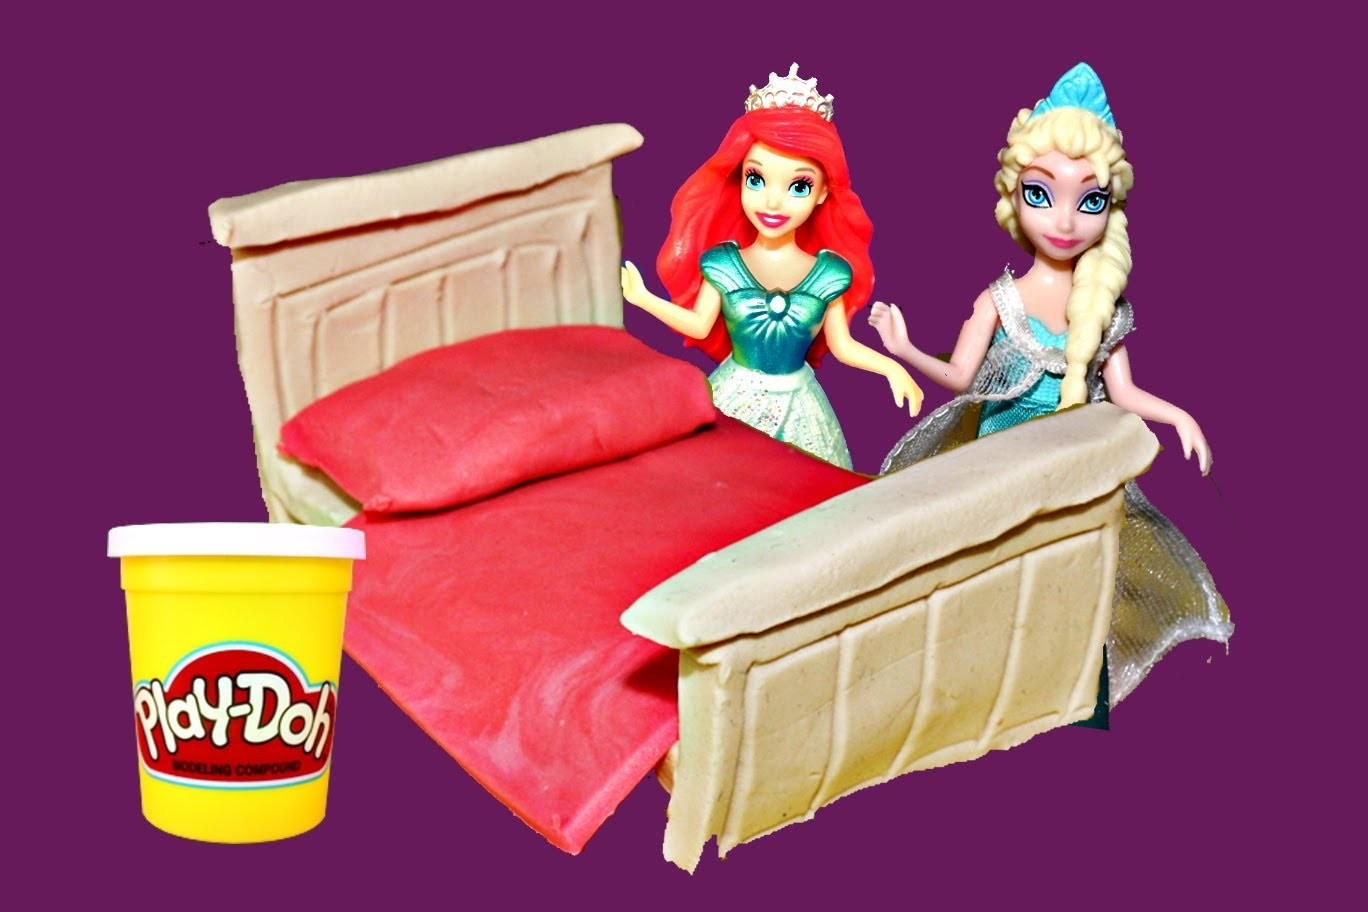 Play Doh Doll Bed Tutorial Elsa, Little Mermaid Ariel and Disney Frozen Princess Anna DisneyCarToys